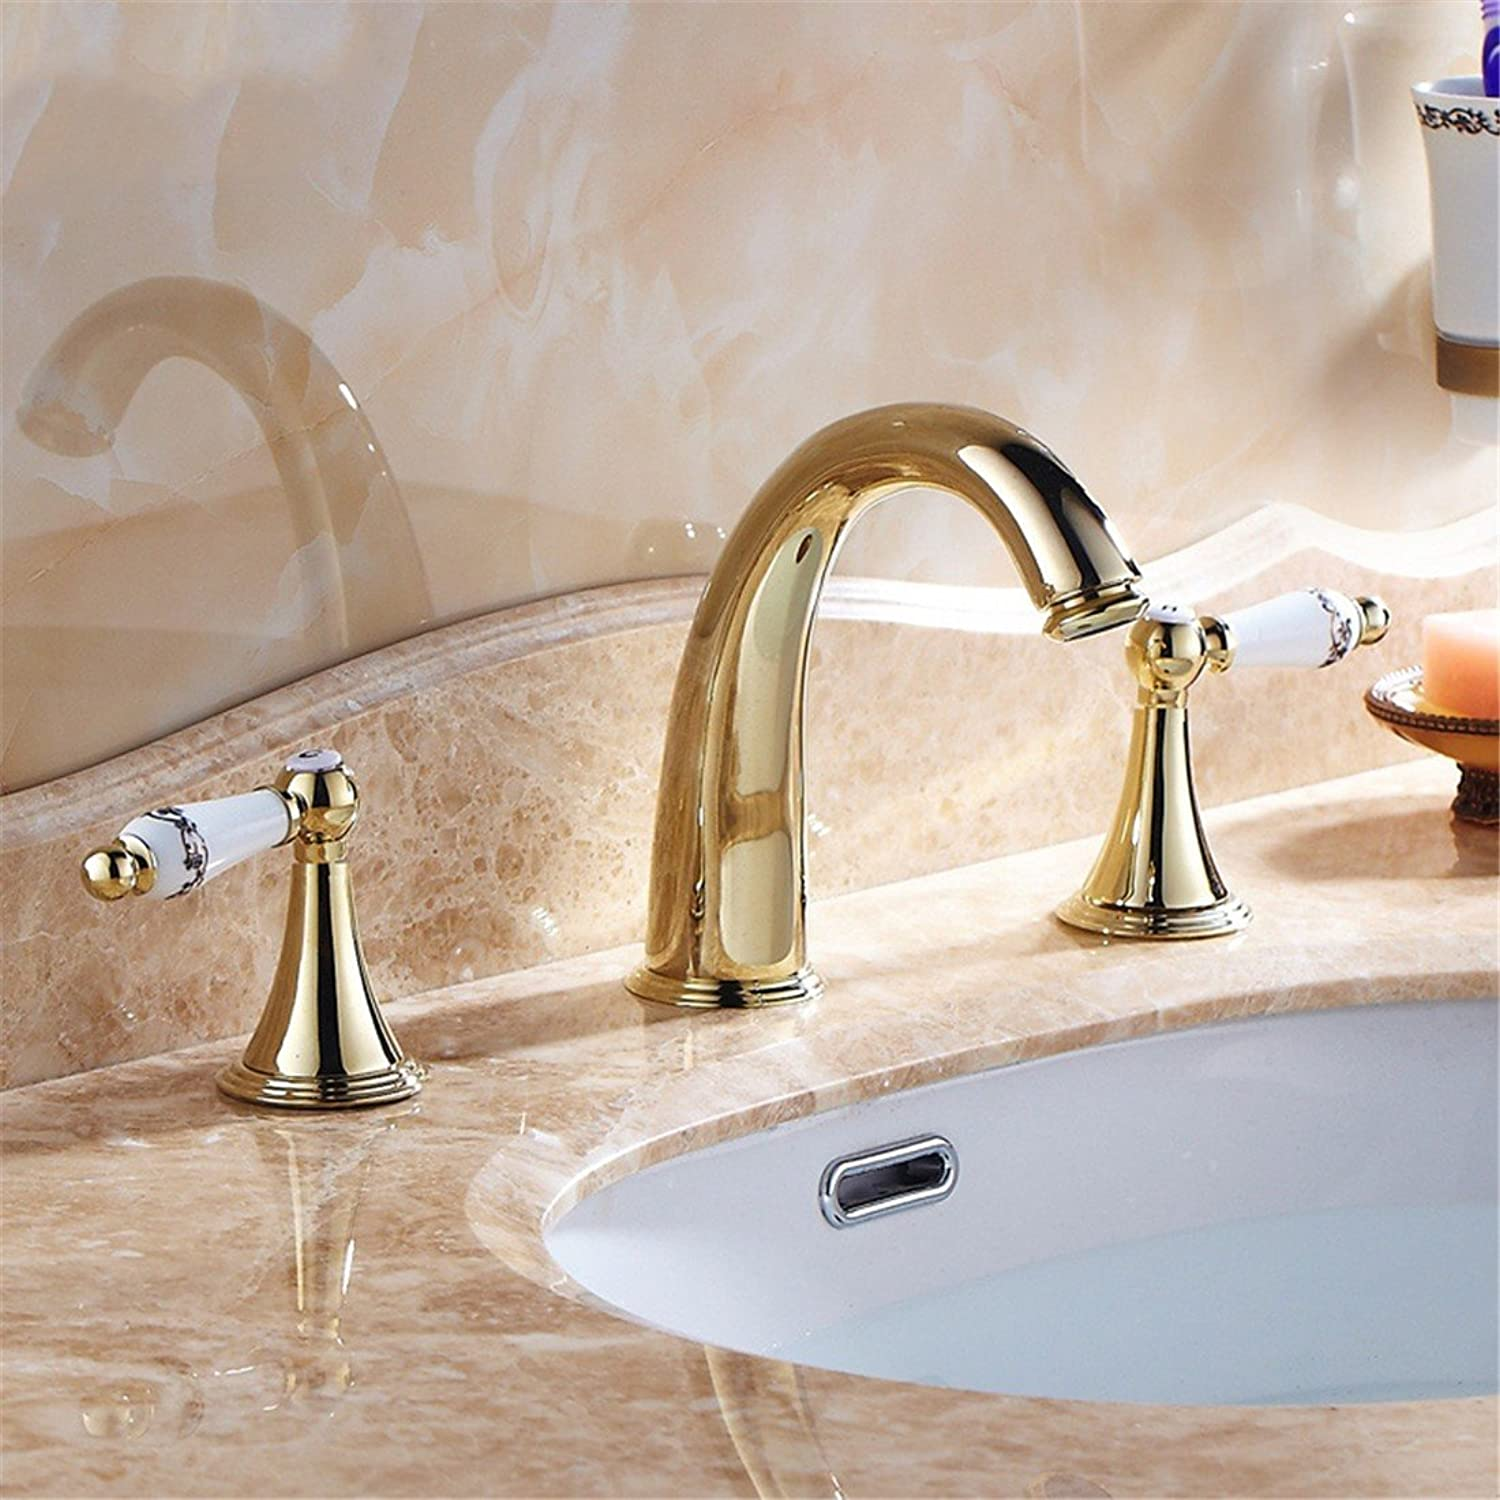 LHbox Basin Mixer Tap Bathroom Sink Faucet Antique continental three hole split cold and hot surface basin pink gold copper gold bathroom faucet Kit, gold